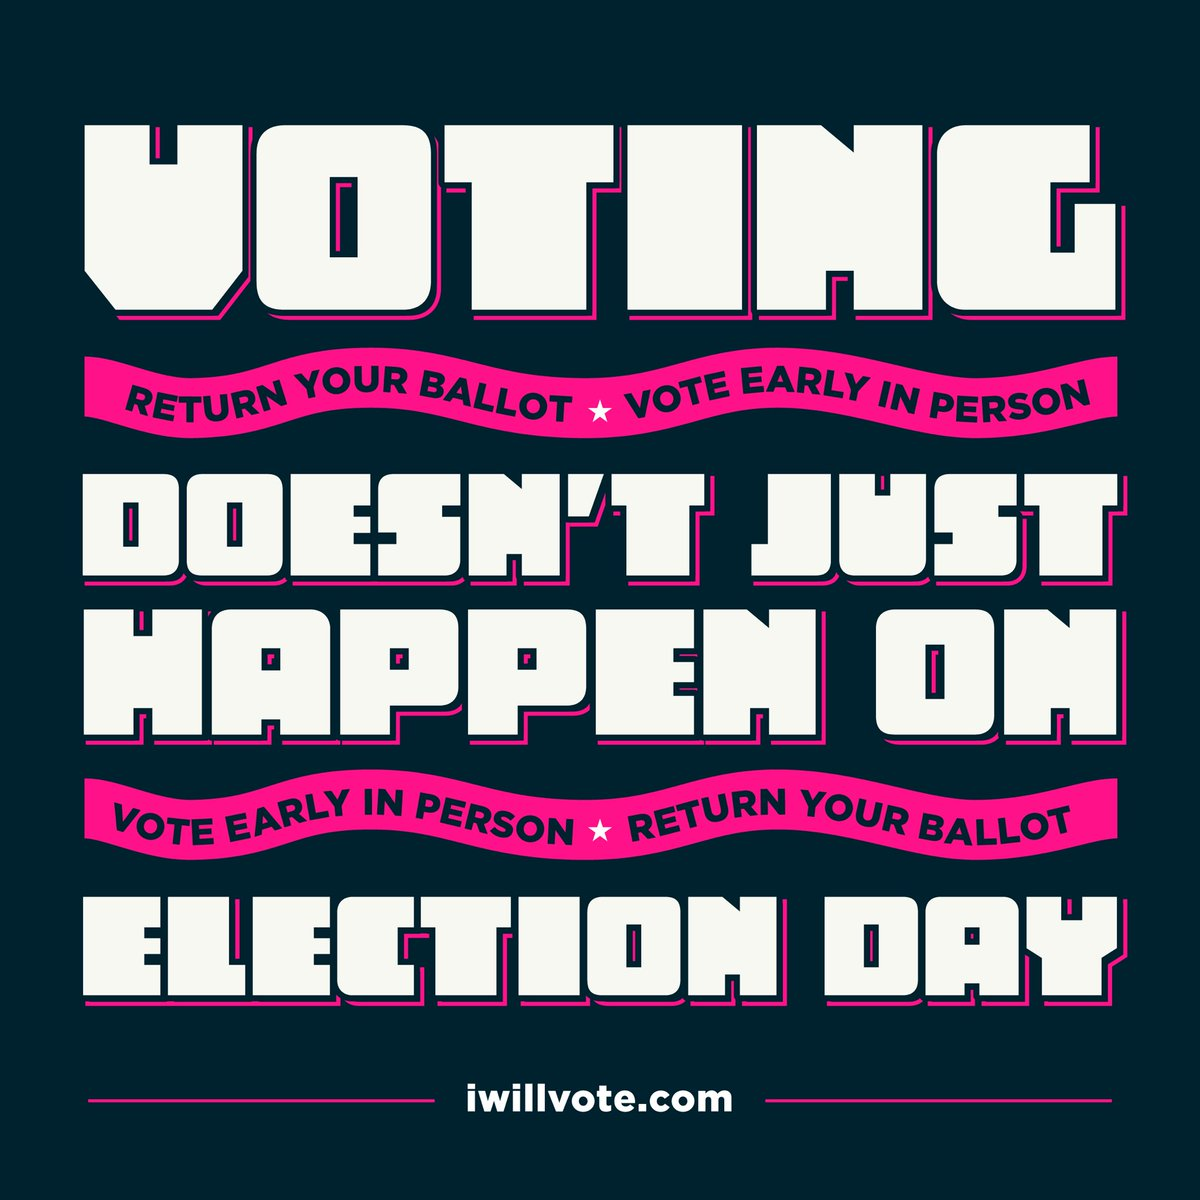 Joe Biden says character is on the ballot. I say reality is also on the ballot. Science is on the ballot. Truth is on the ballot. Don't mail in your ballot, bring it to a designated drop off box. Or vote in person. #VoteEarly